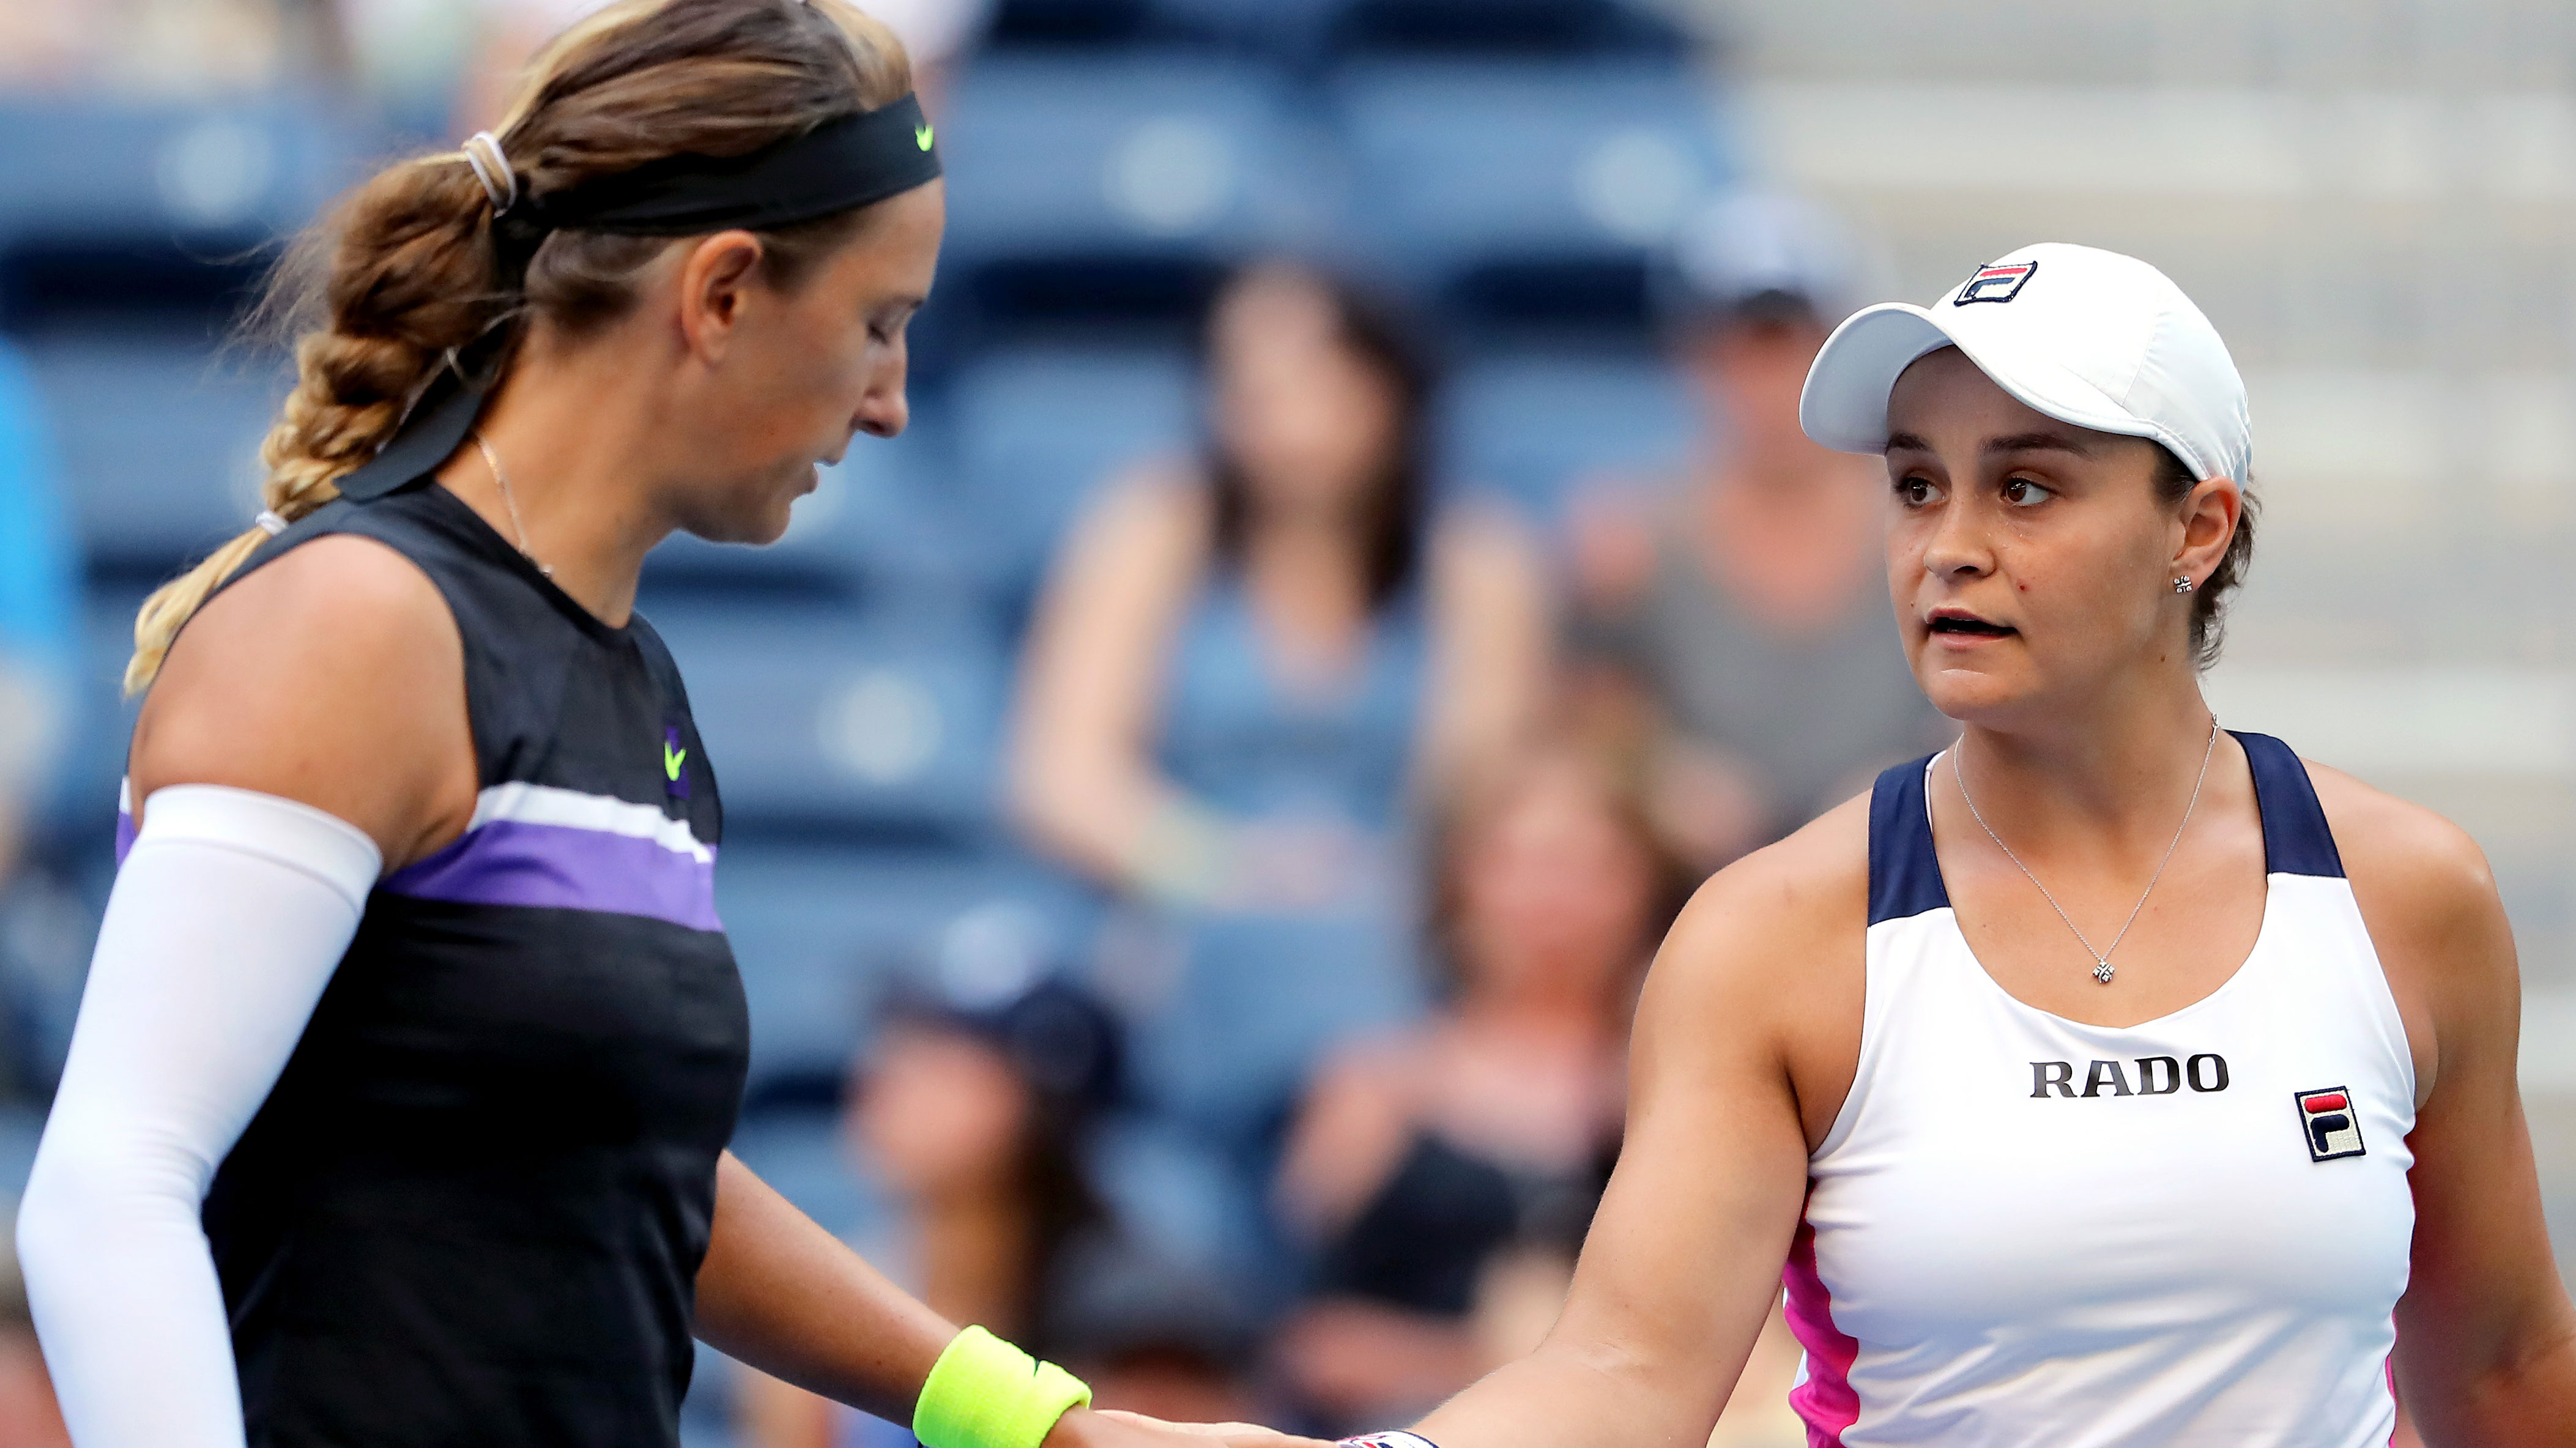 Victoria Azarenka and Ash Barty romped to victory in their US Open semi final.